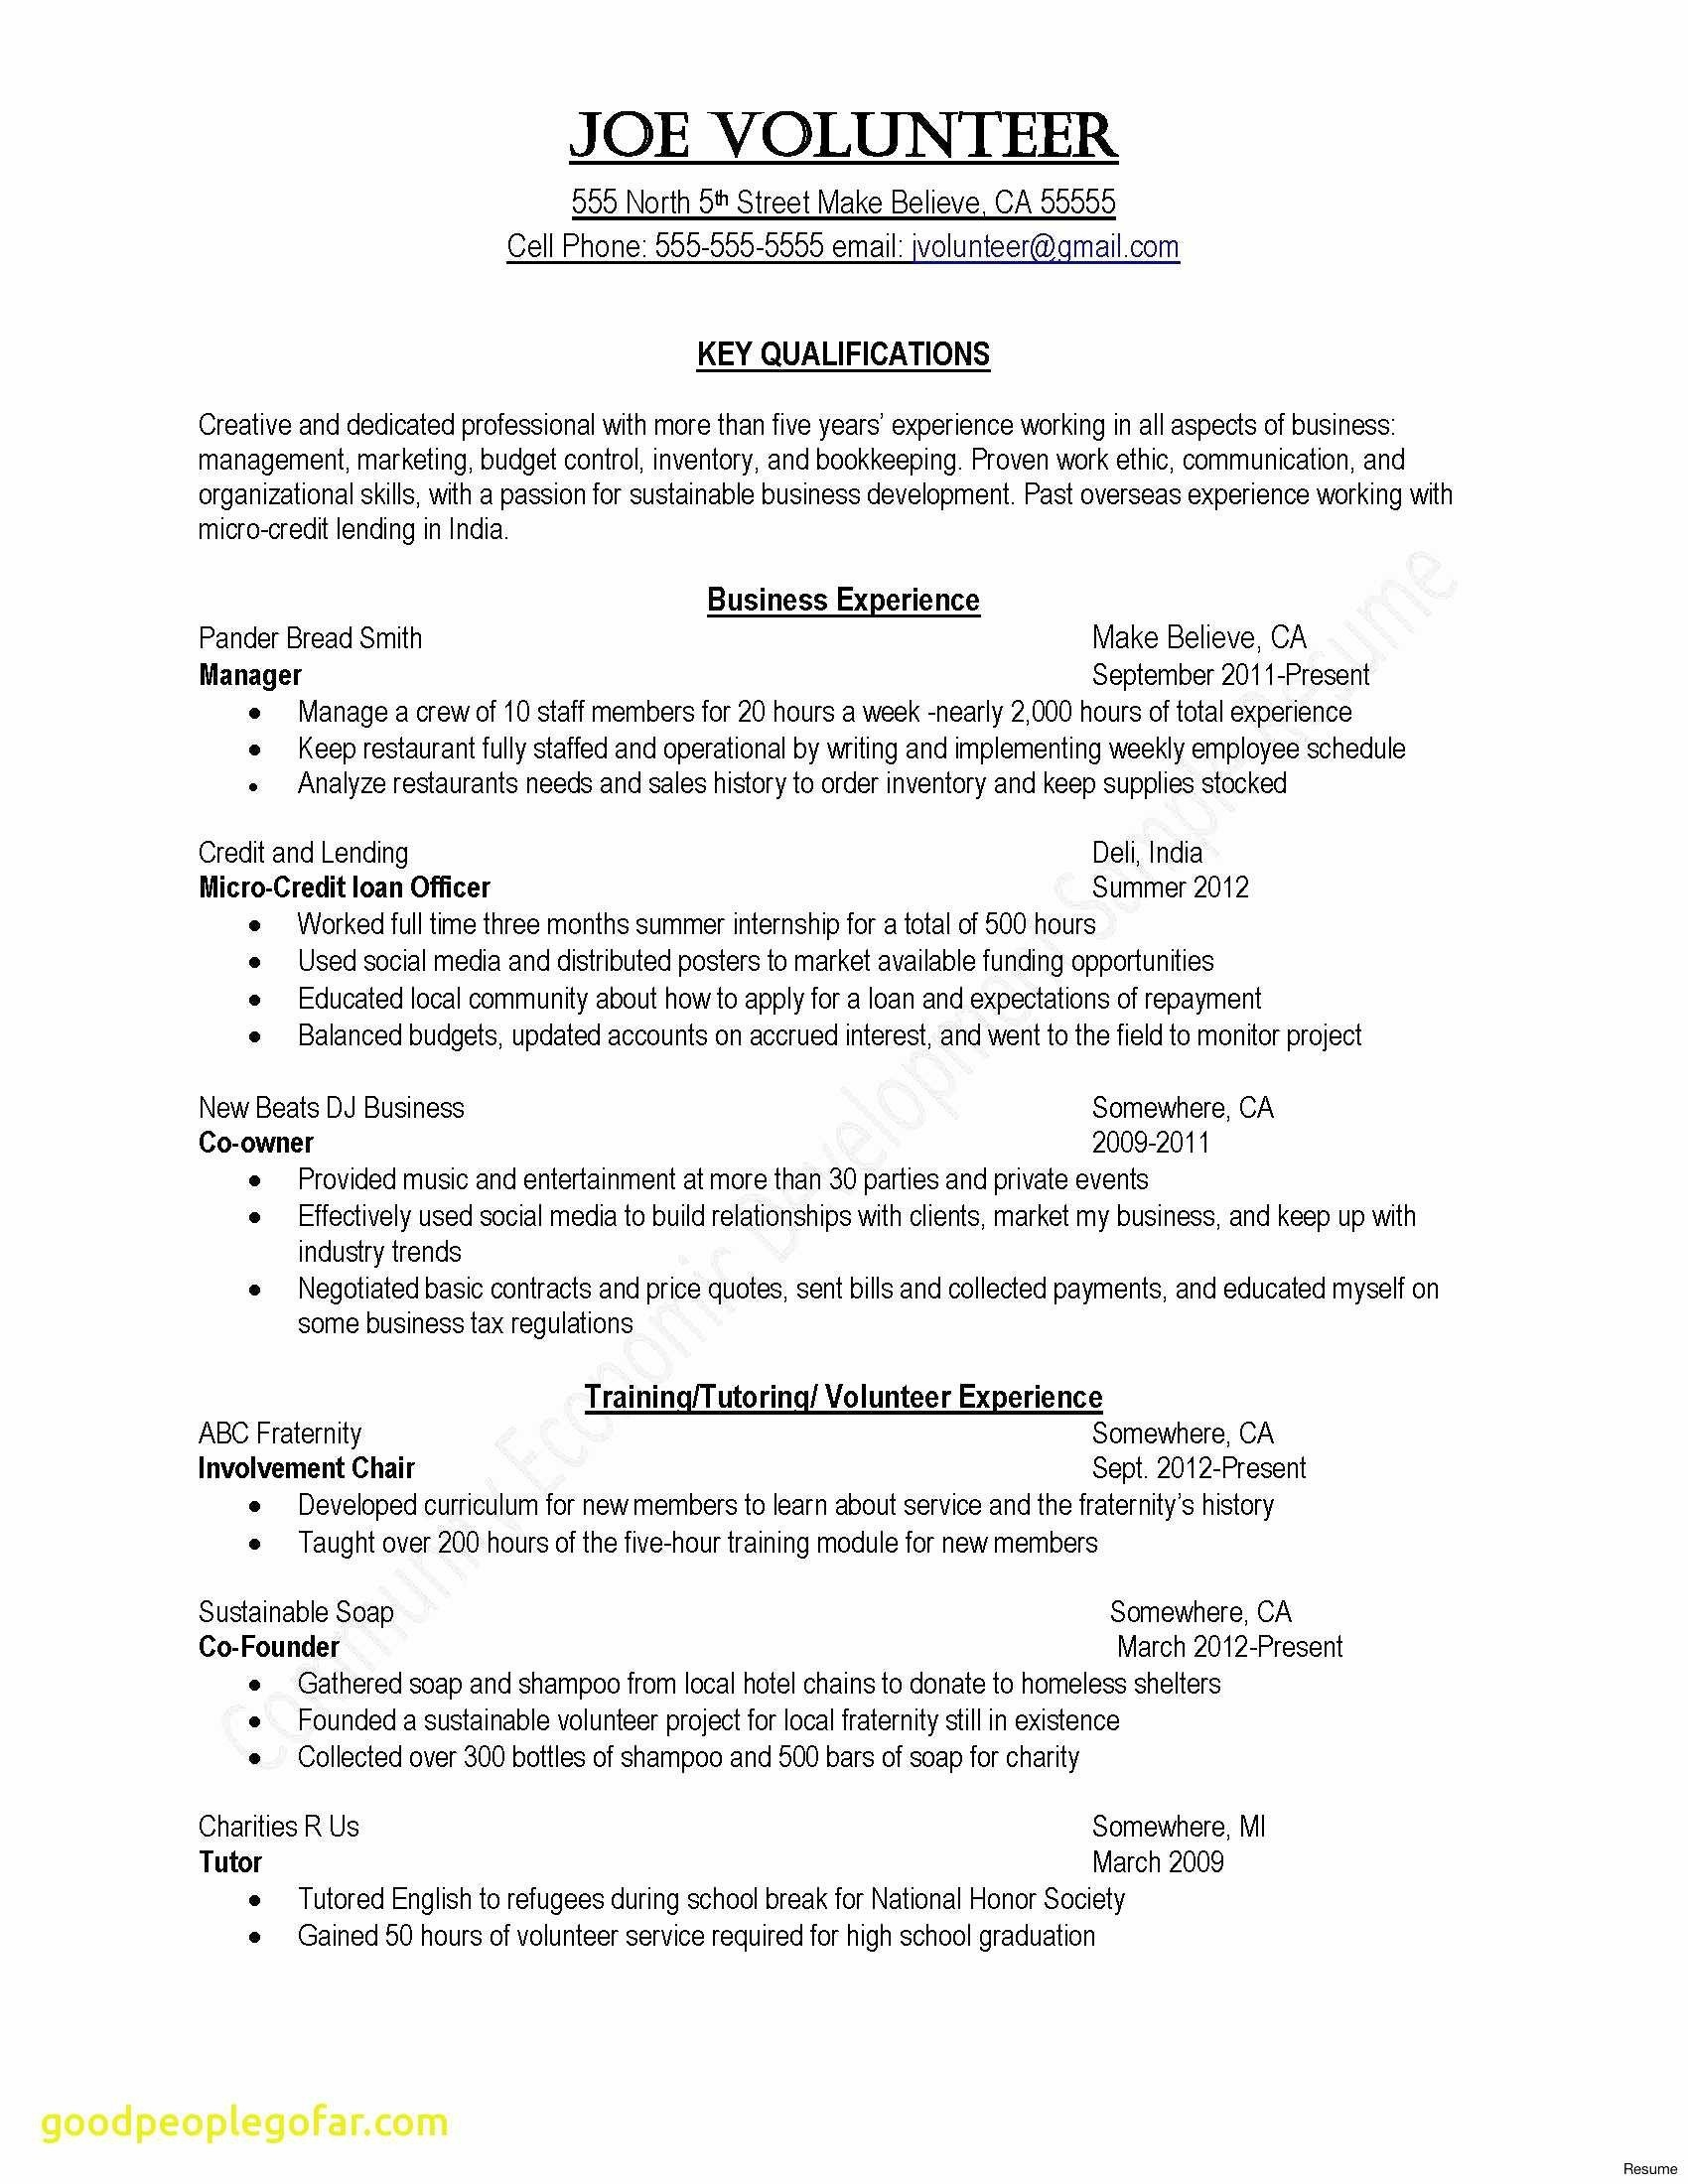 I Need Help Writing My Resume - Letter Introduction Template Collection